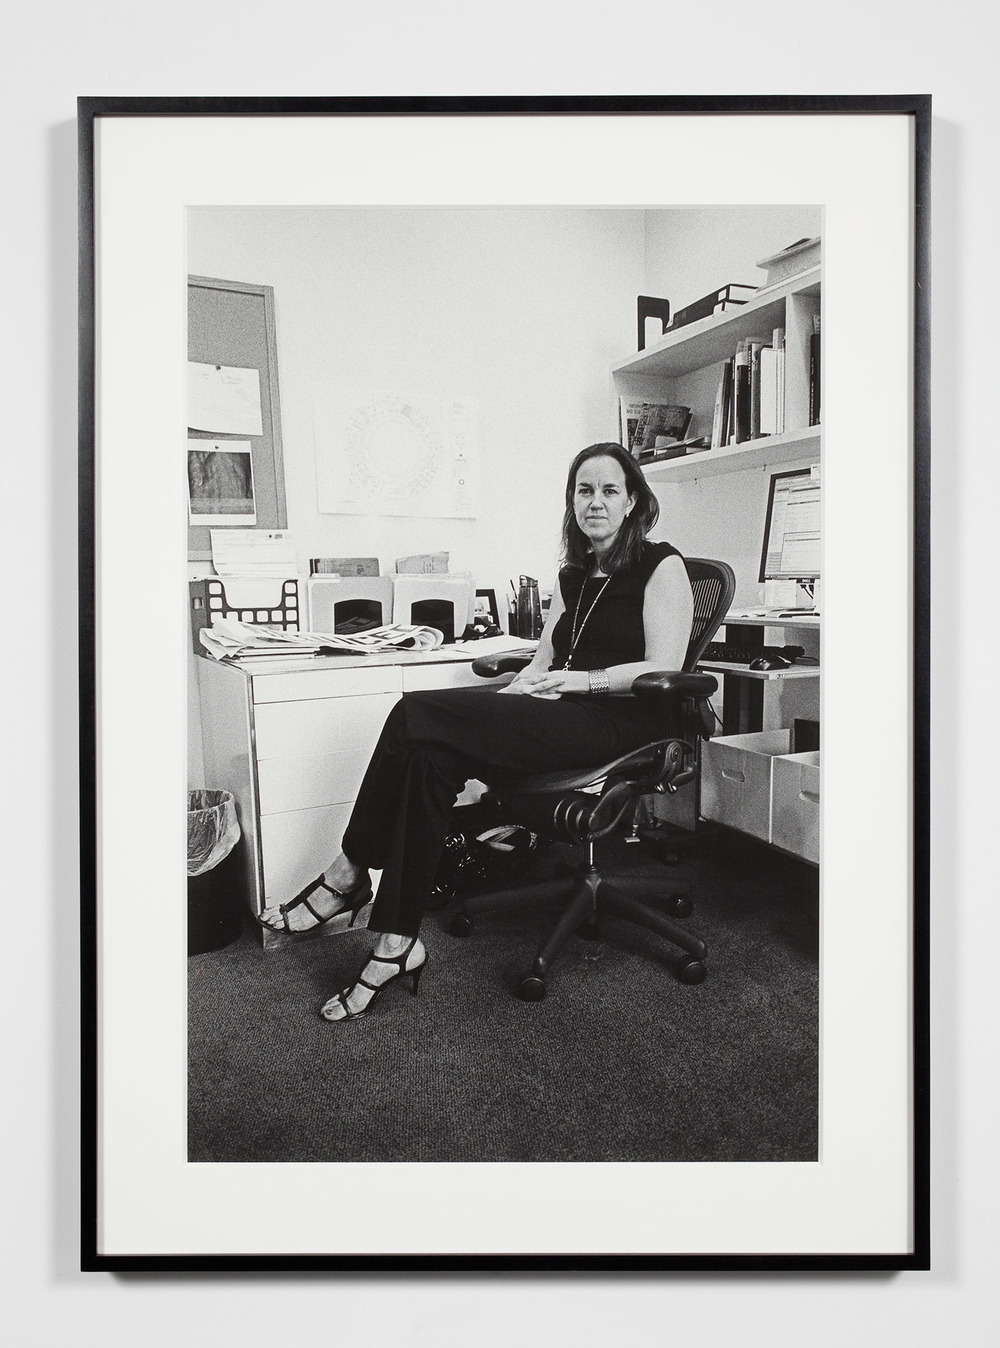 Museum Curator, Washington, District of Columbia, August 13, 2008    2011   Epson Ultrachrome K3 archival ink jet print on Hahnemühle Photo Rag paper  36 3/8 x 26 3/8 inches   Industrial Portraits, 2008–